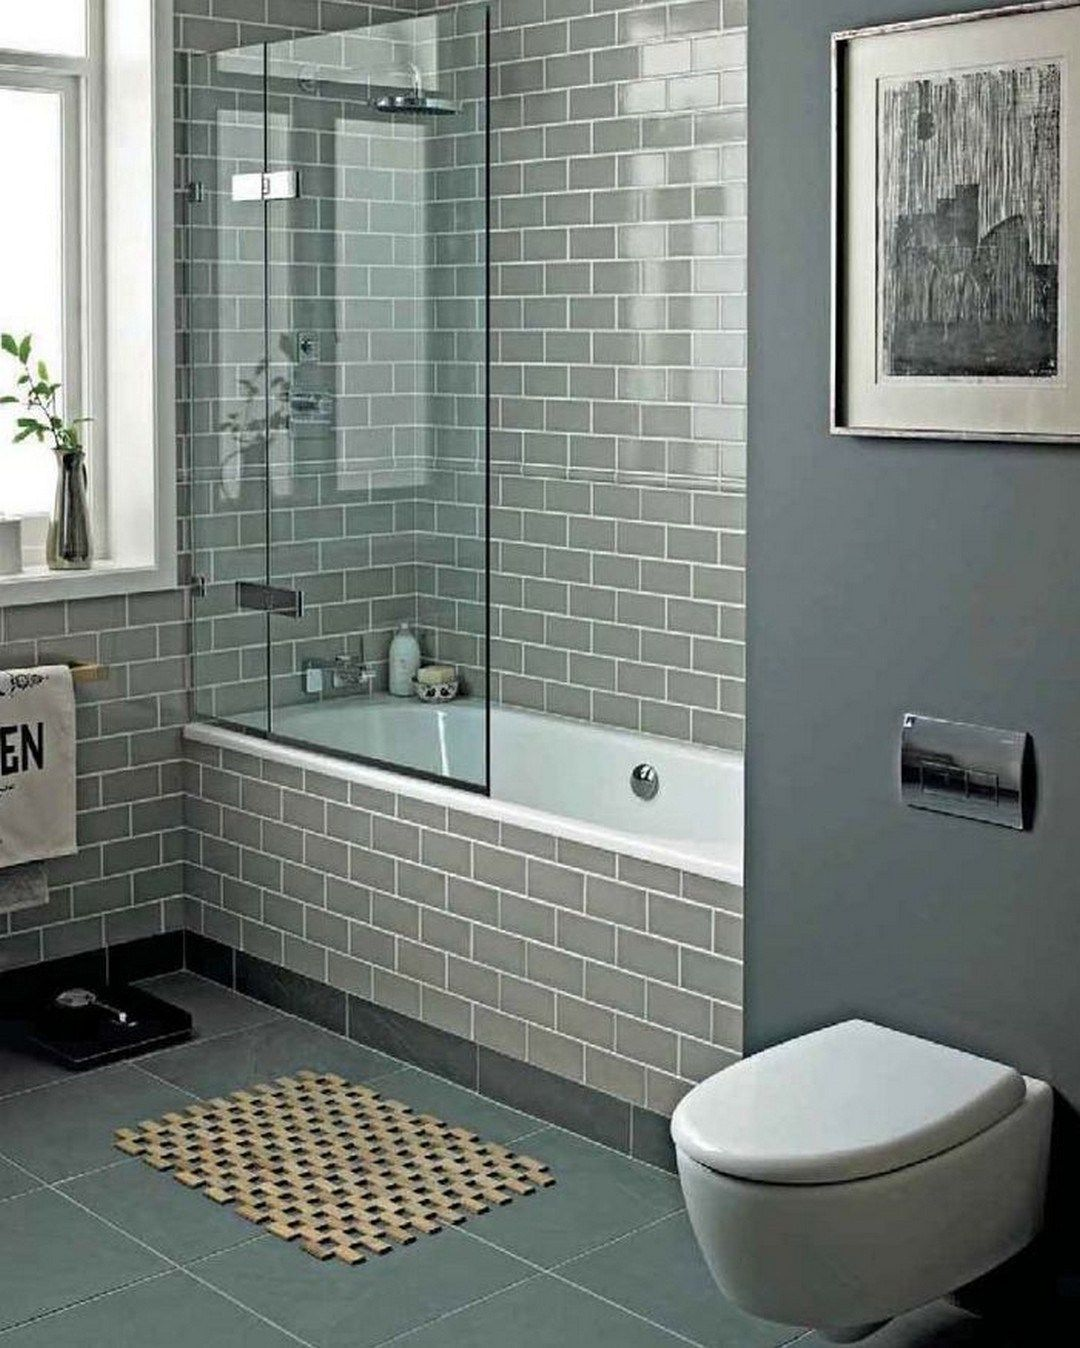 65+ Small Bathroom Remodel Ideas for Washing in Style | Pinterest ...